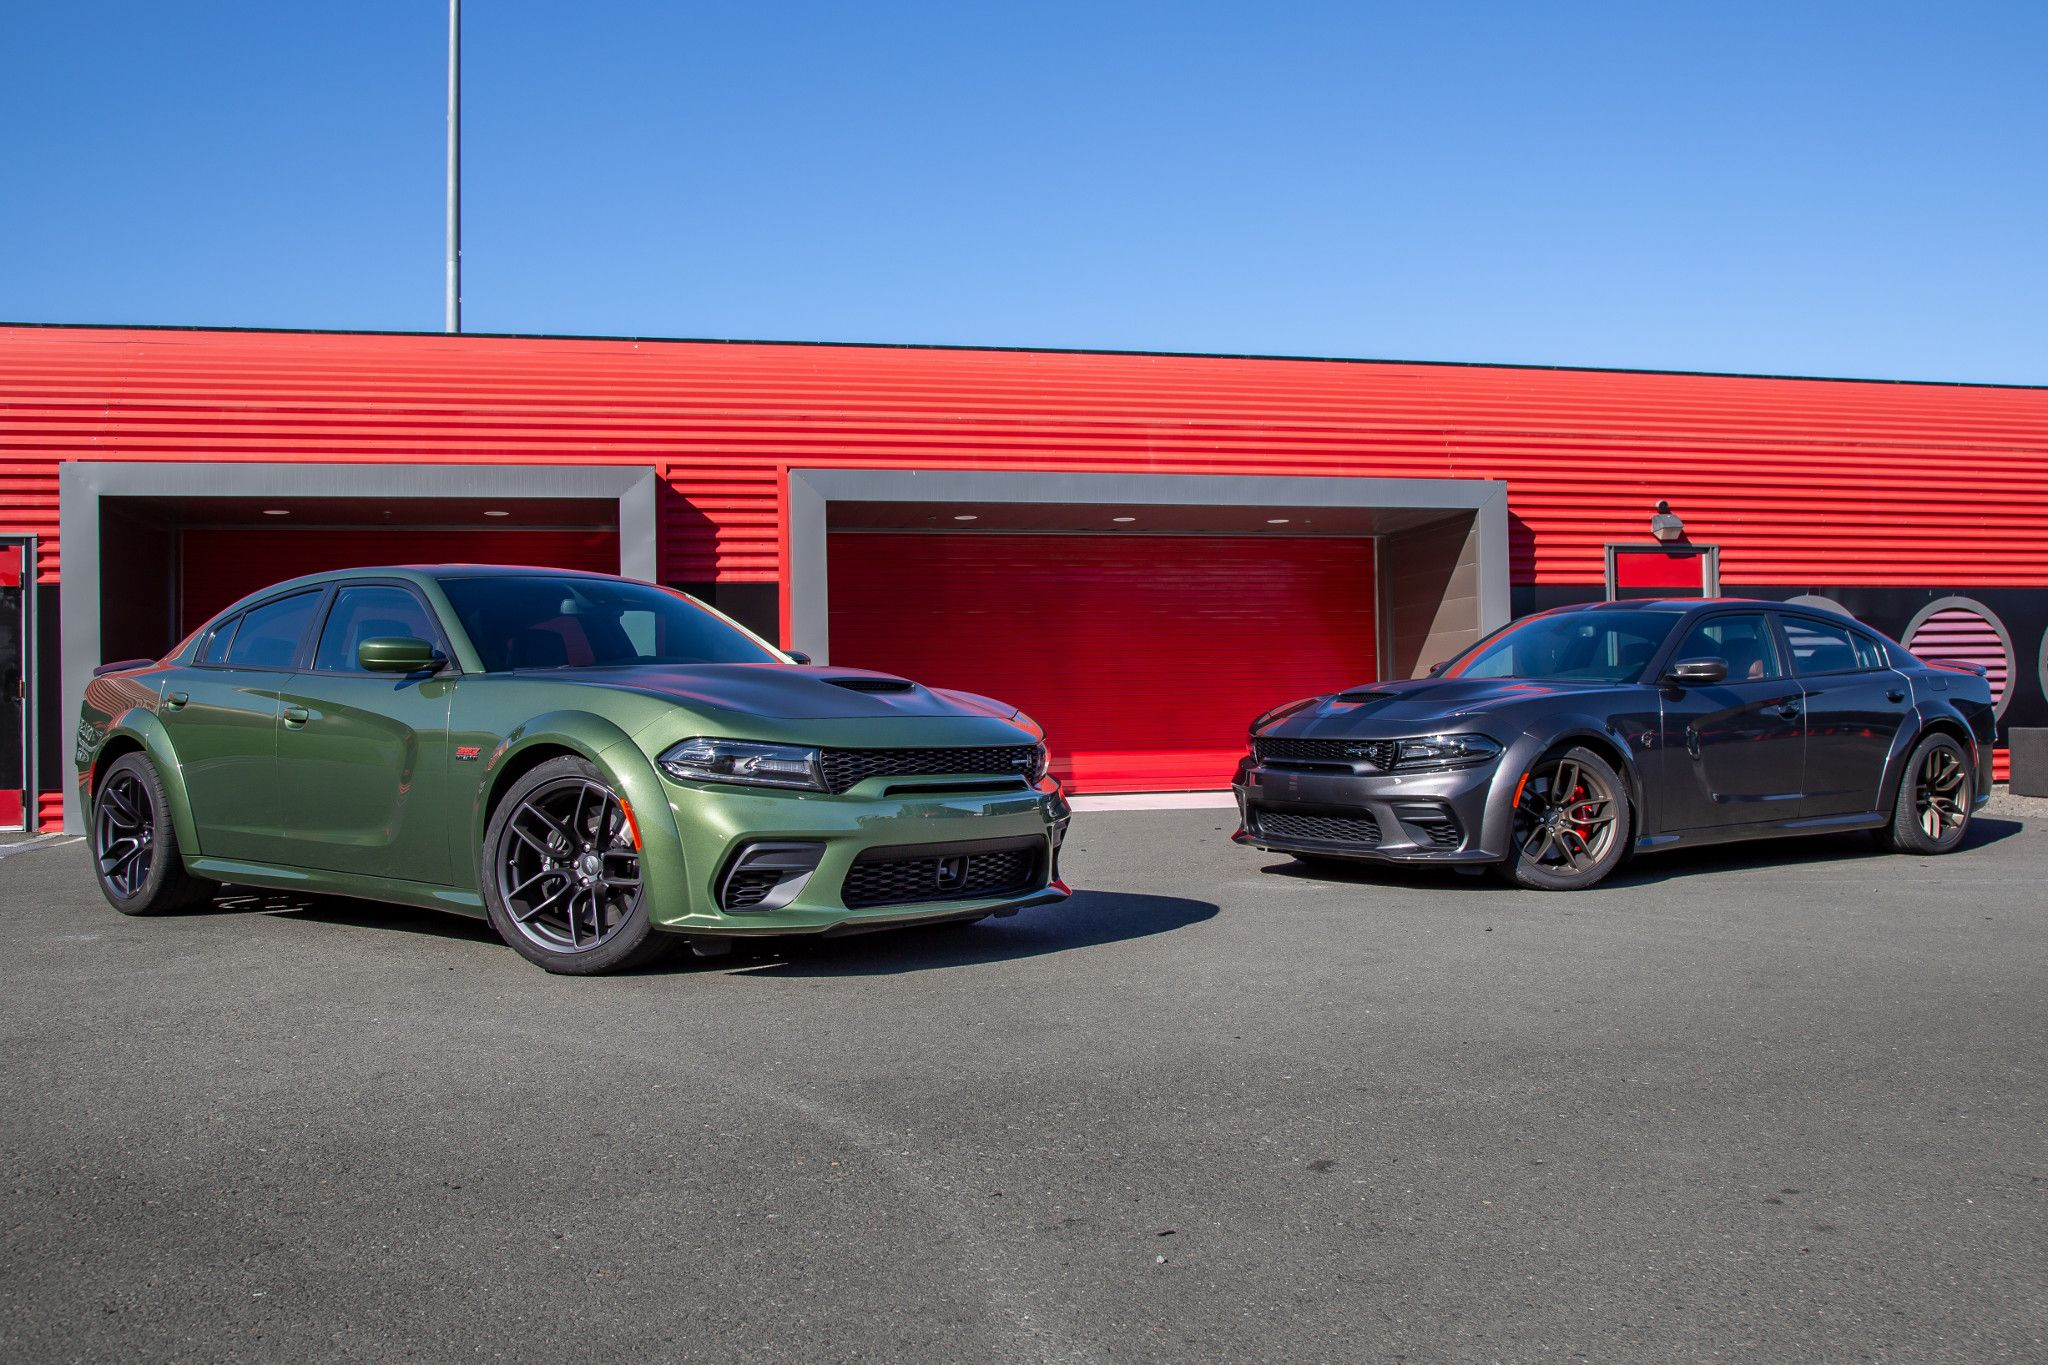 dodge hellcat for sale louisiana 2019 Dodge Charger Hellcat For Sale In Louisiana - GERCHIR